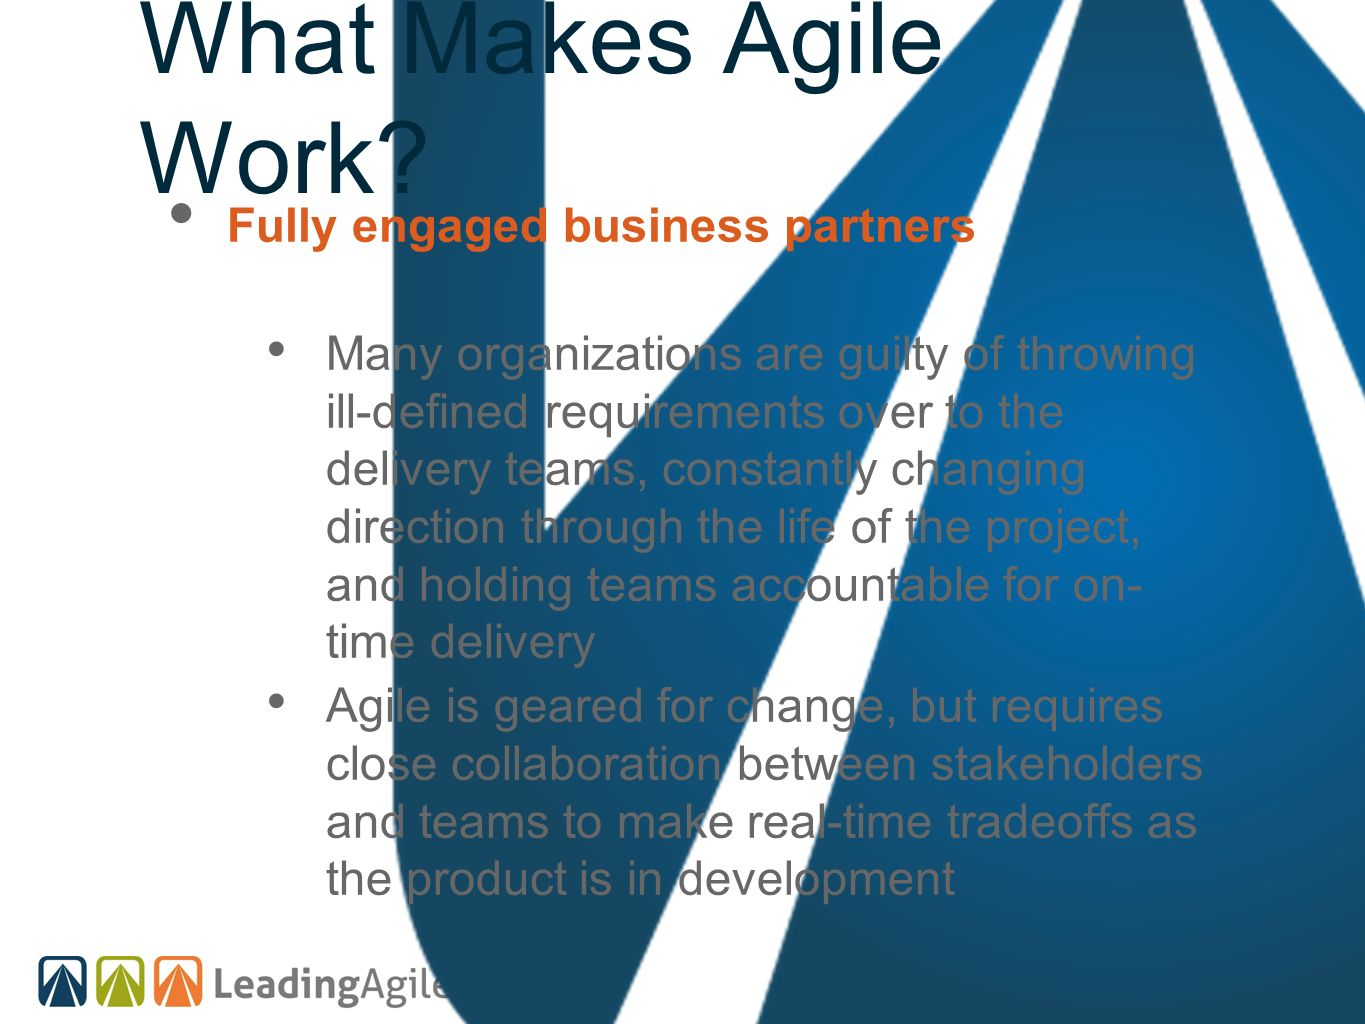 What Makes Agile Work Fully engaged business partners